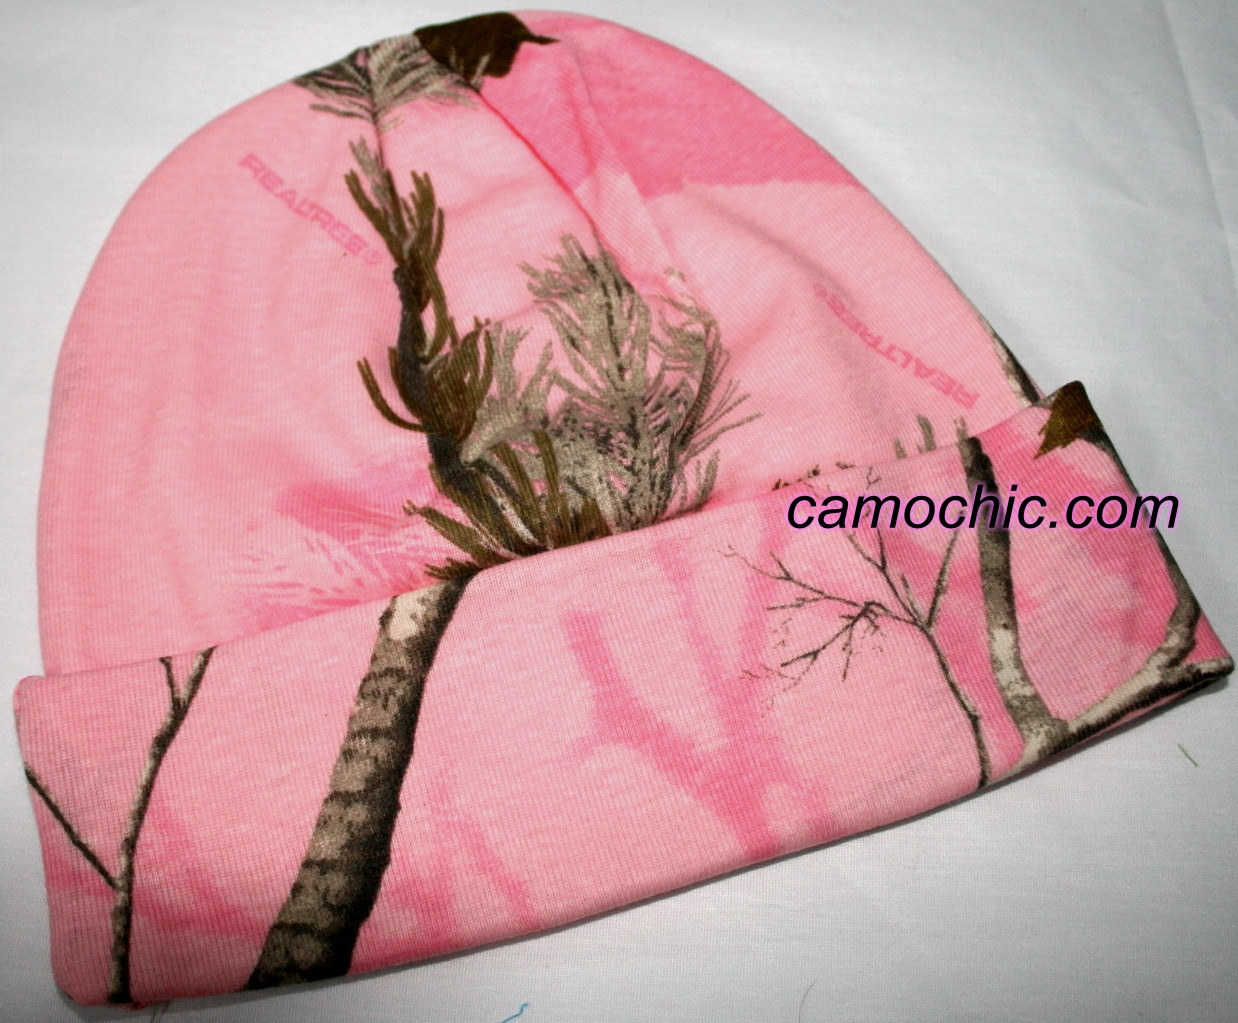 Camouflage mossy camo hunting camo camouflage pants camoflauge - Pink Realtree Camo Scrapbook Paper For Pinterest